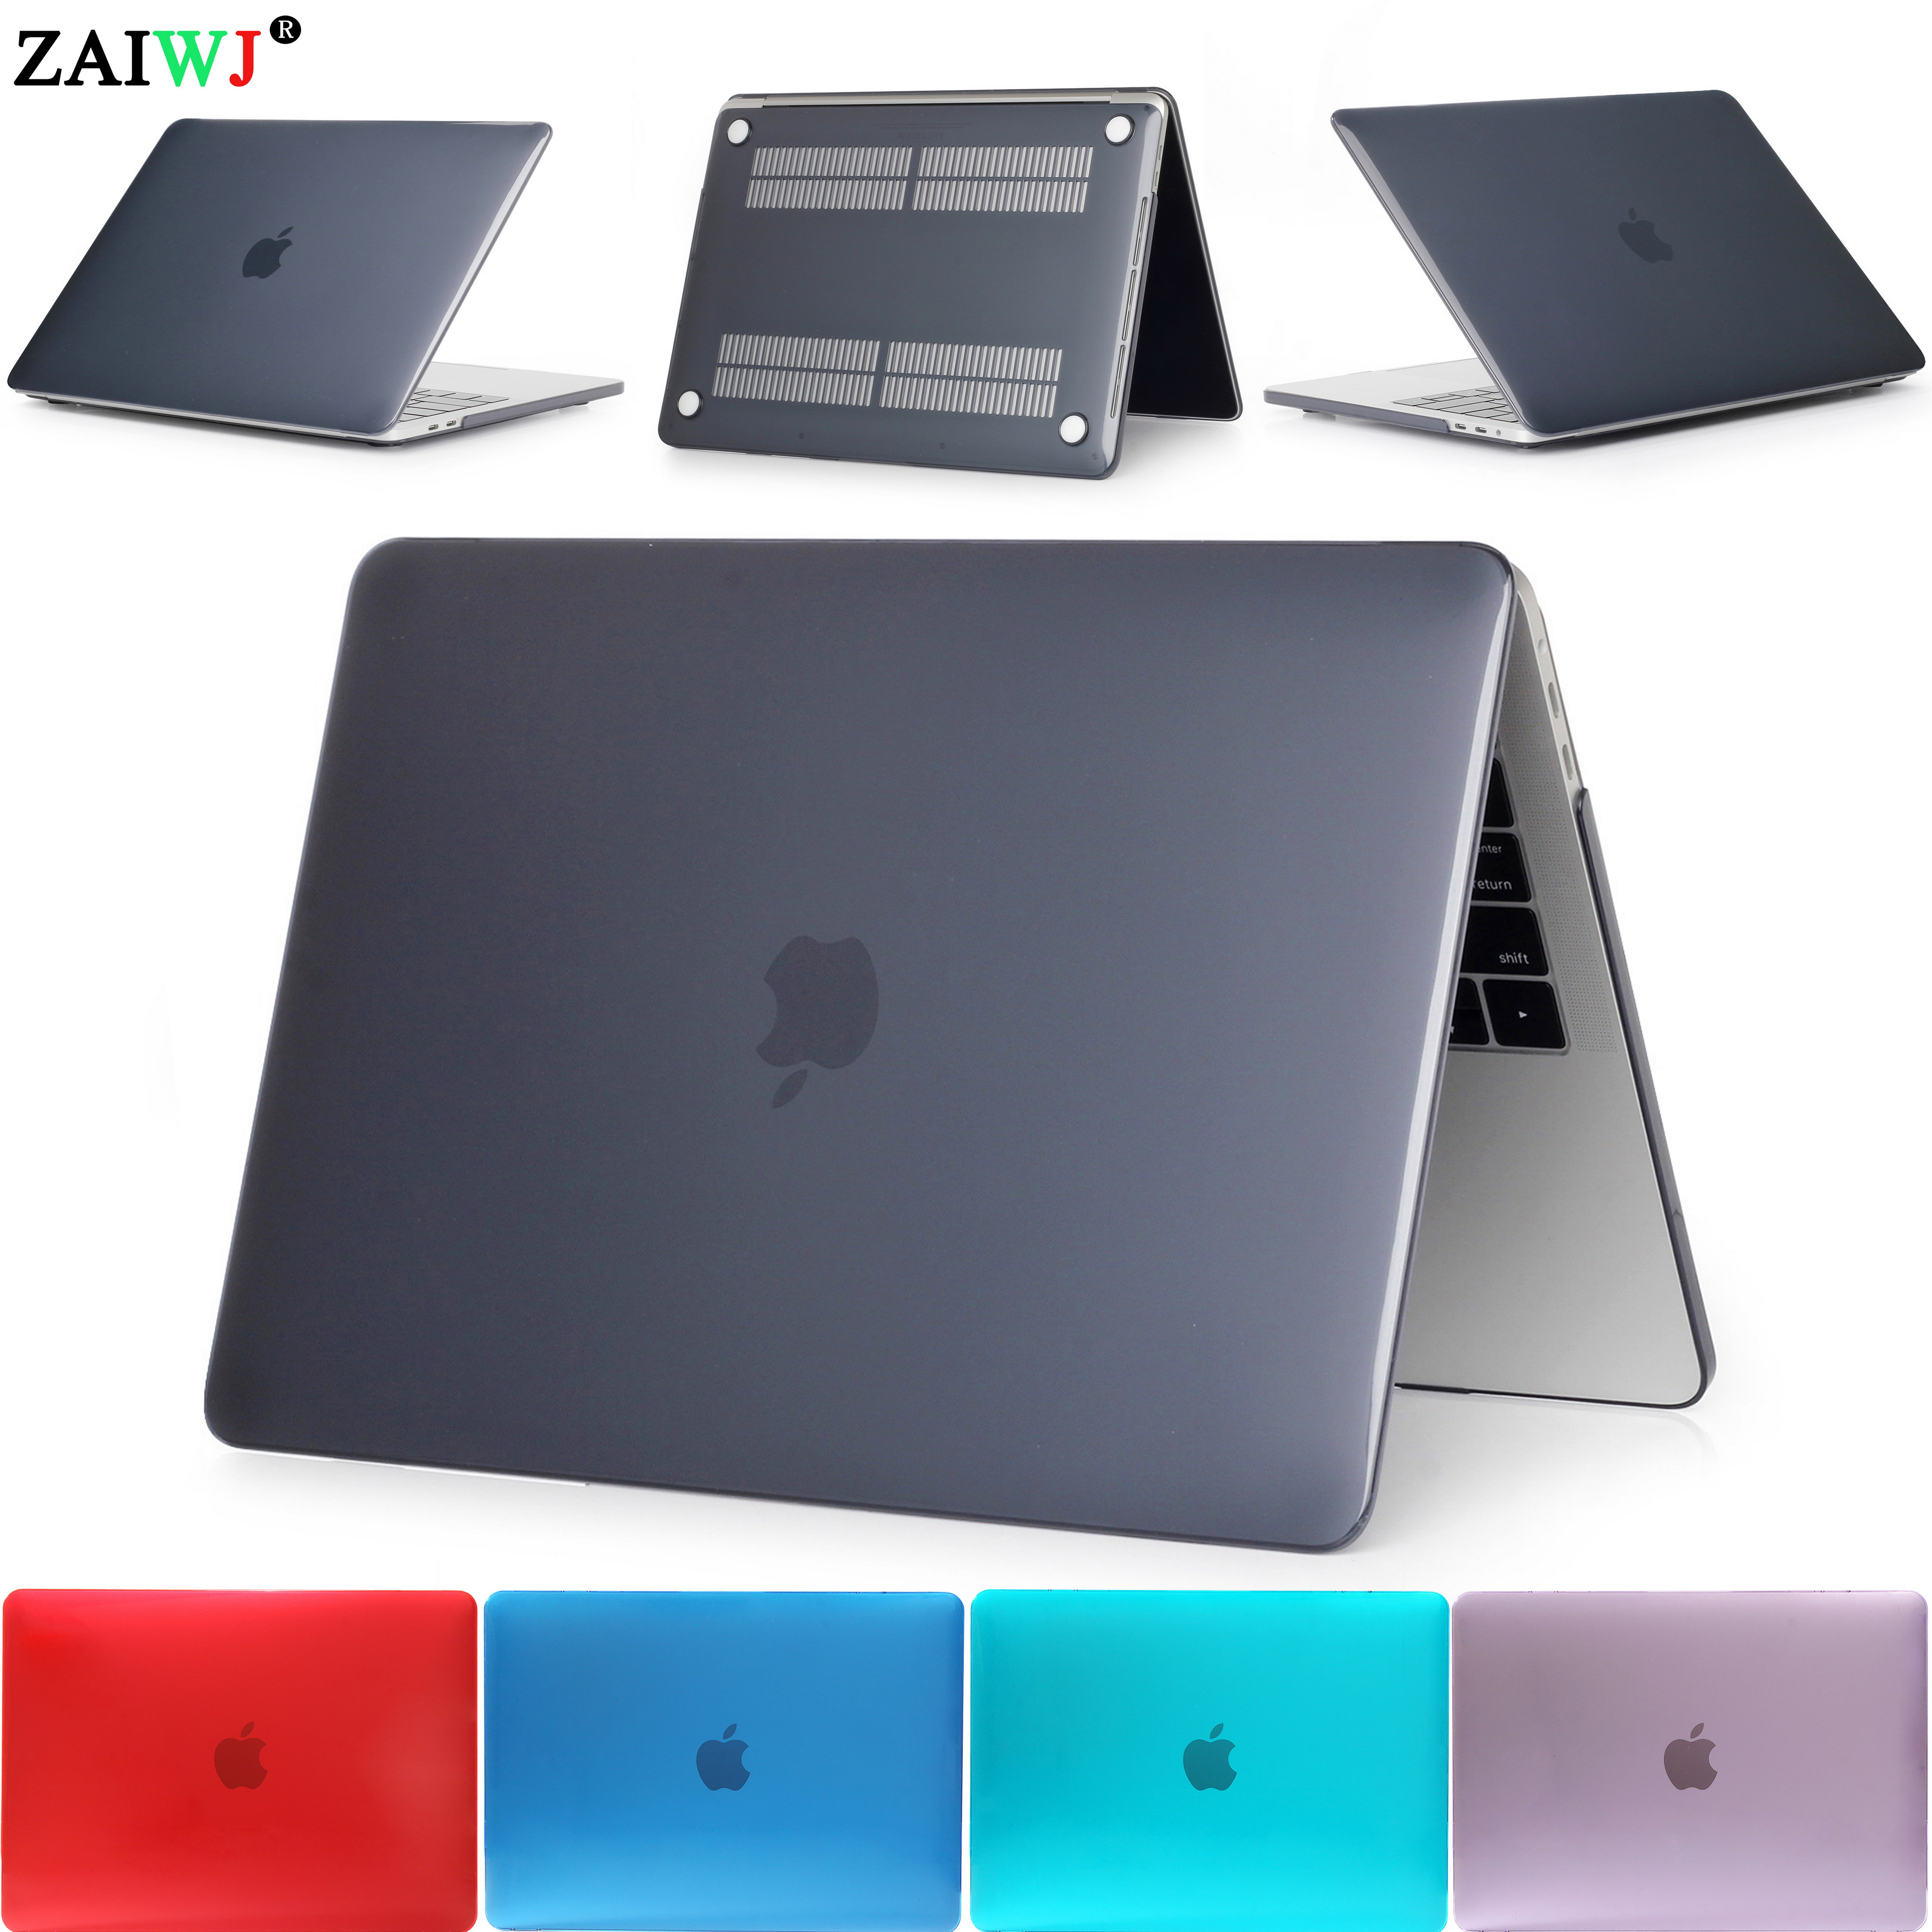 2020 3D Laptop case for Air 13 A2179 A1932 for Pro Retina 11 12 13 15 16 Touch bar ID A2251 A2289 Keyboard Cover-RS-20-Air 11 A1370 A1465